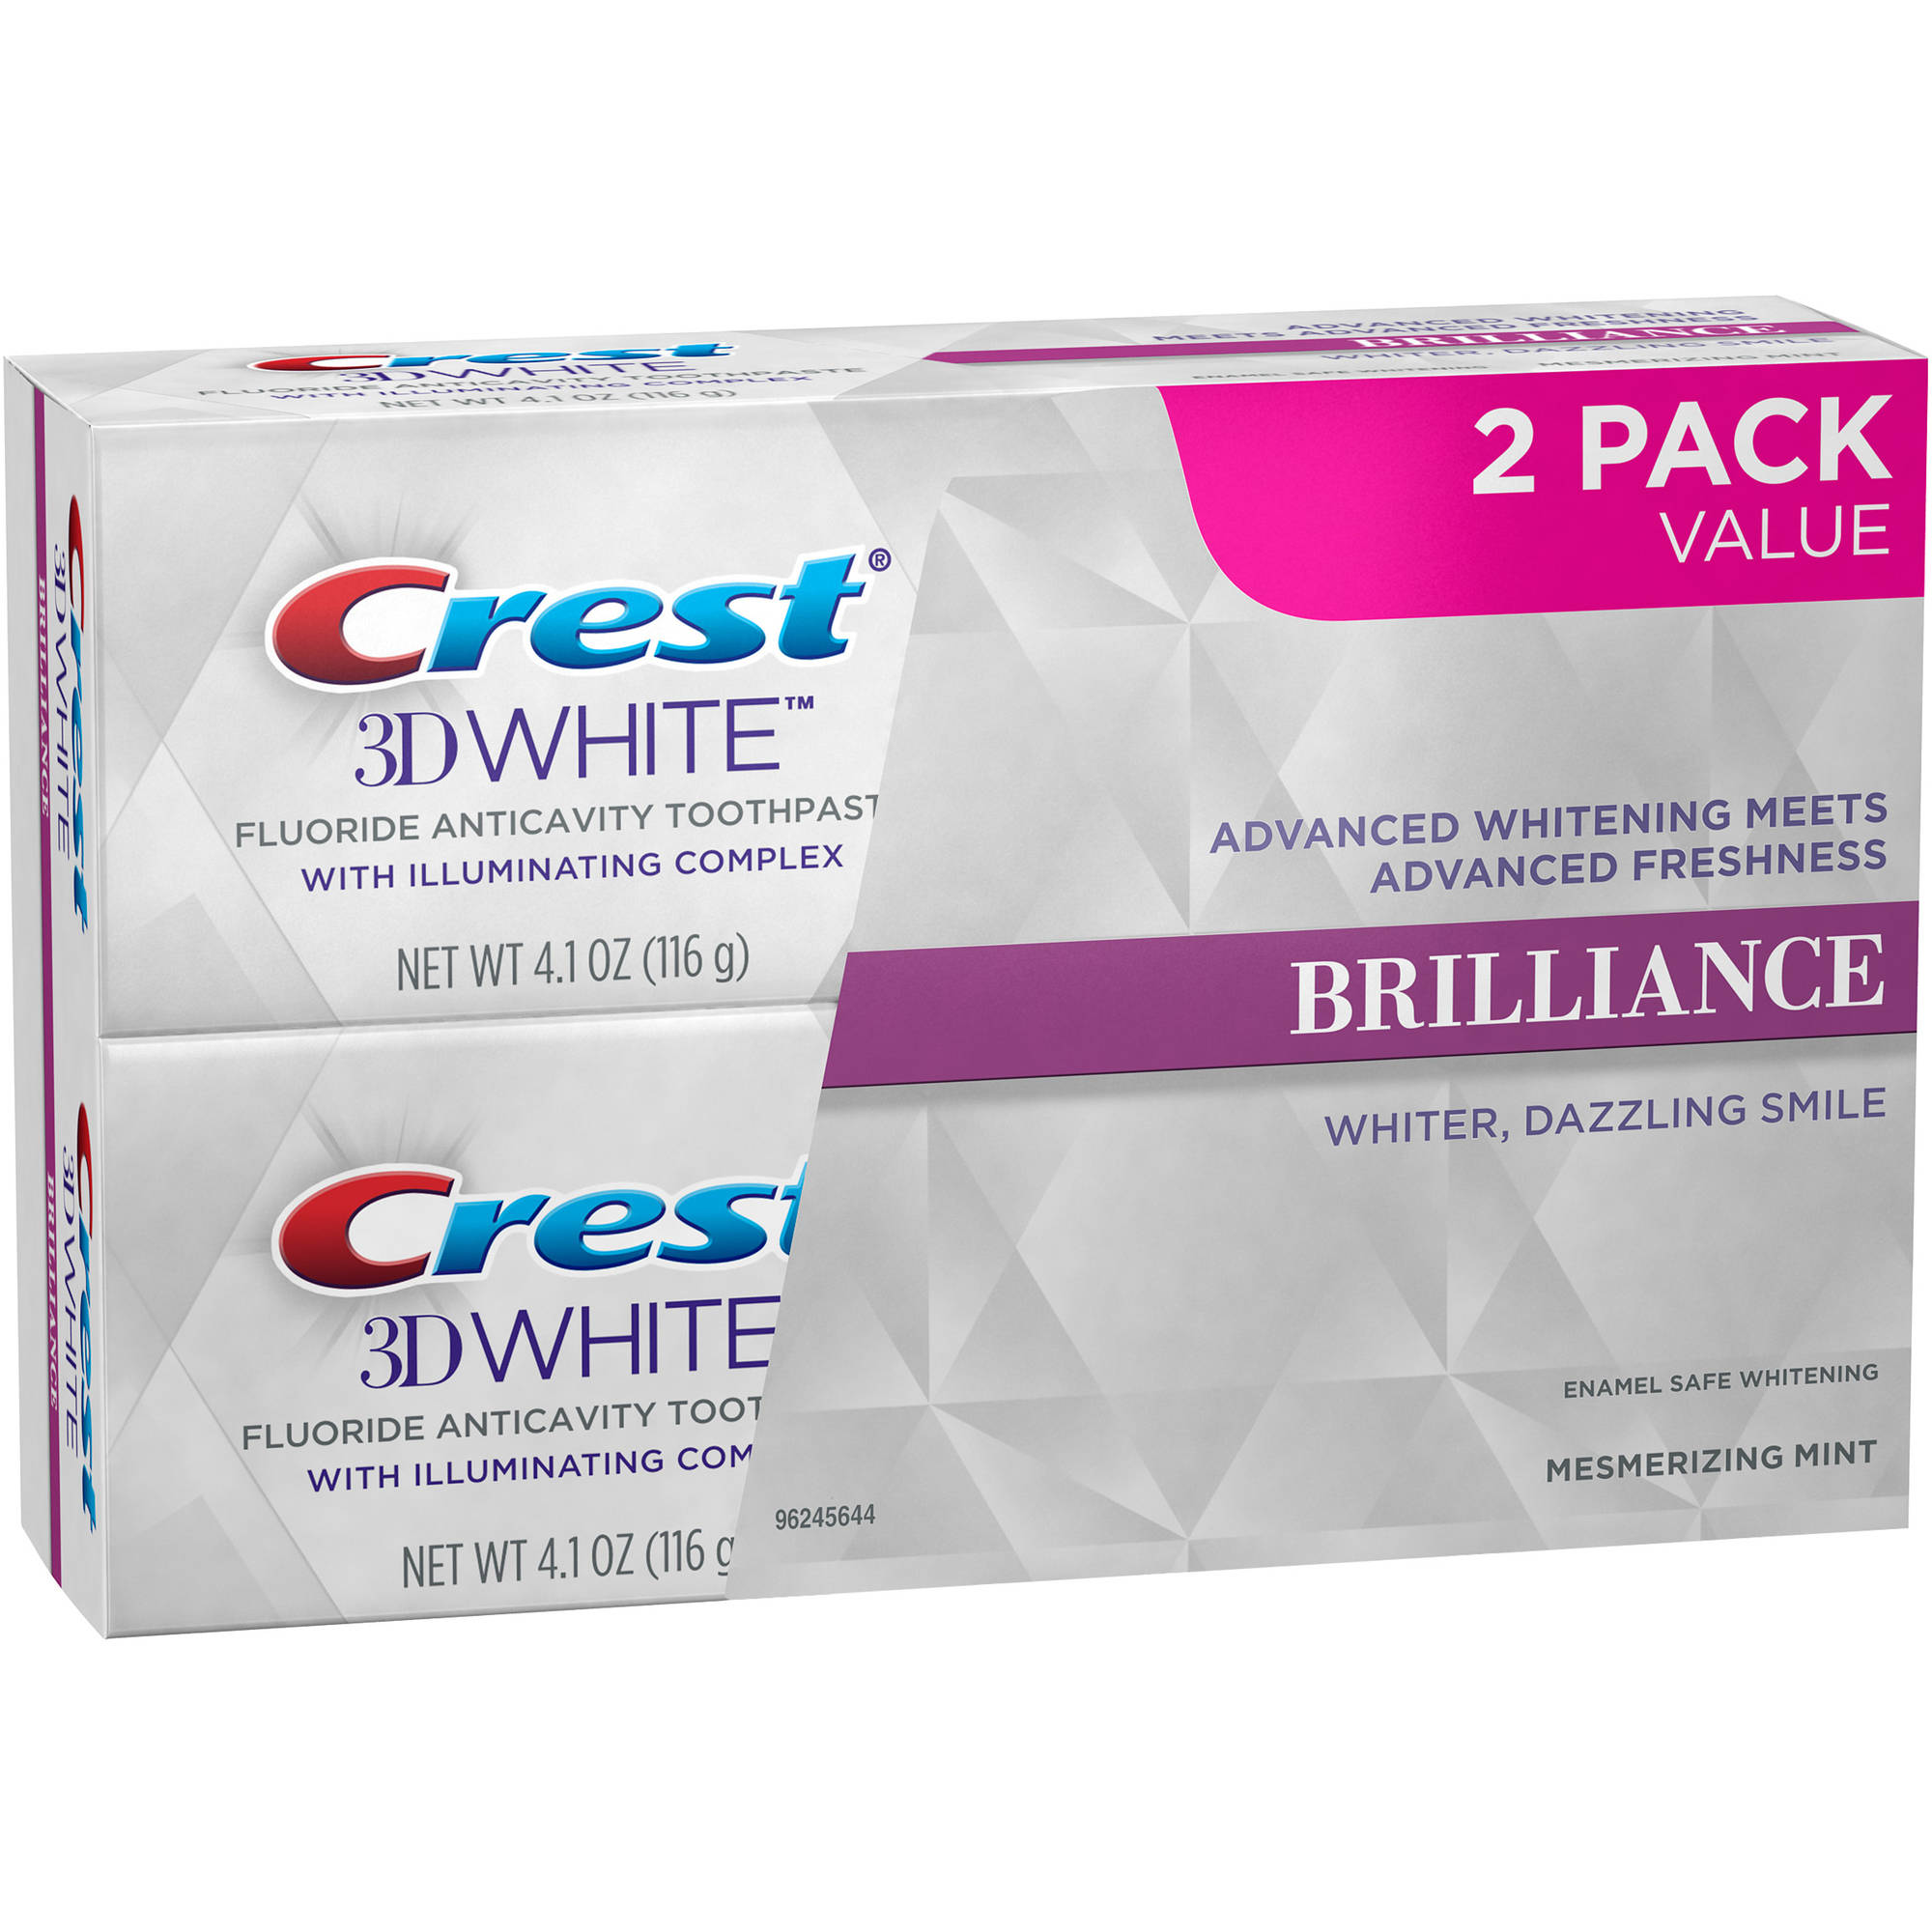 Crest 3D White Brilliance Mesmerizing Mint Whitening Toothpaste, 4.1 oz, (Pack of 2)